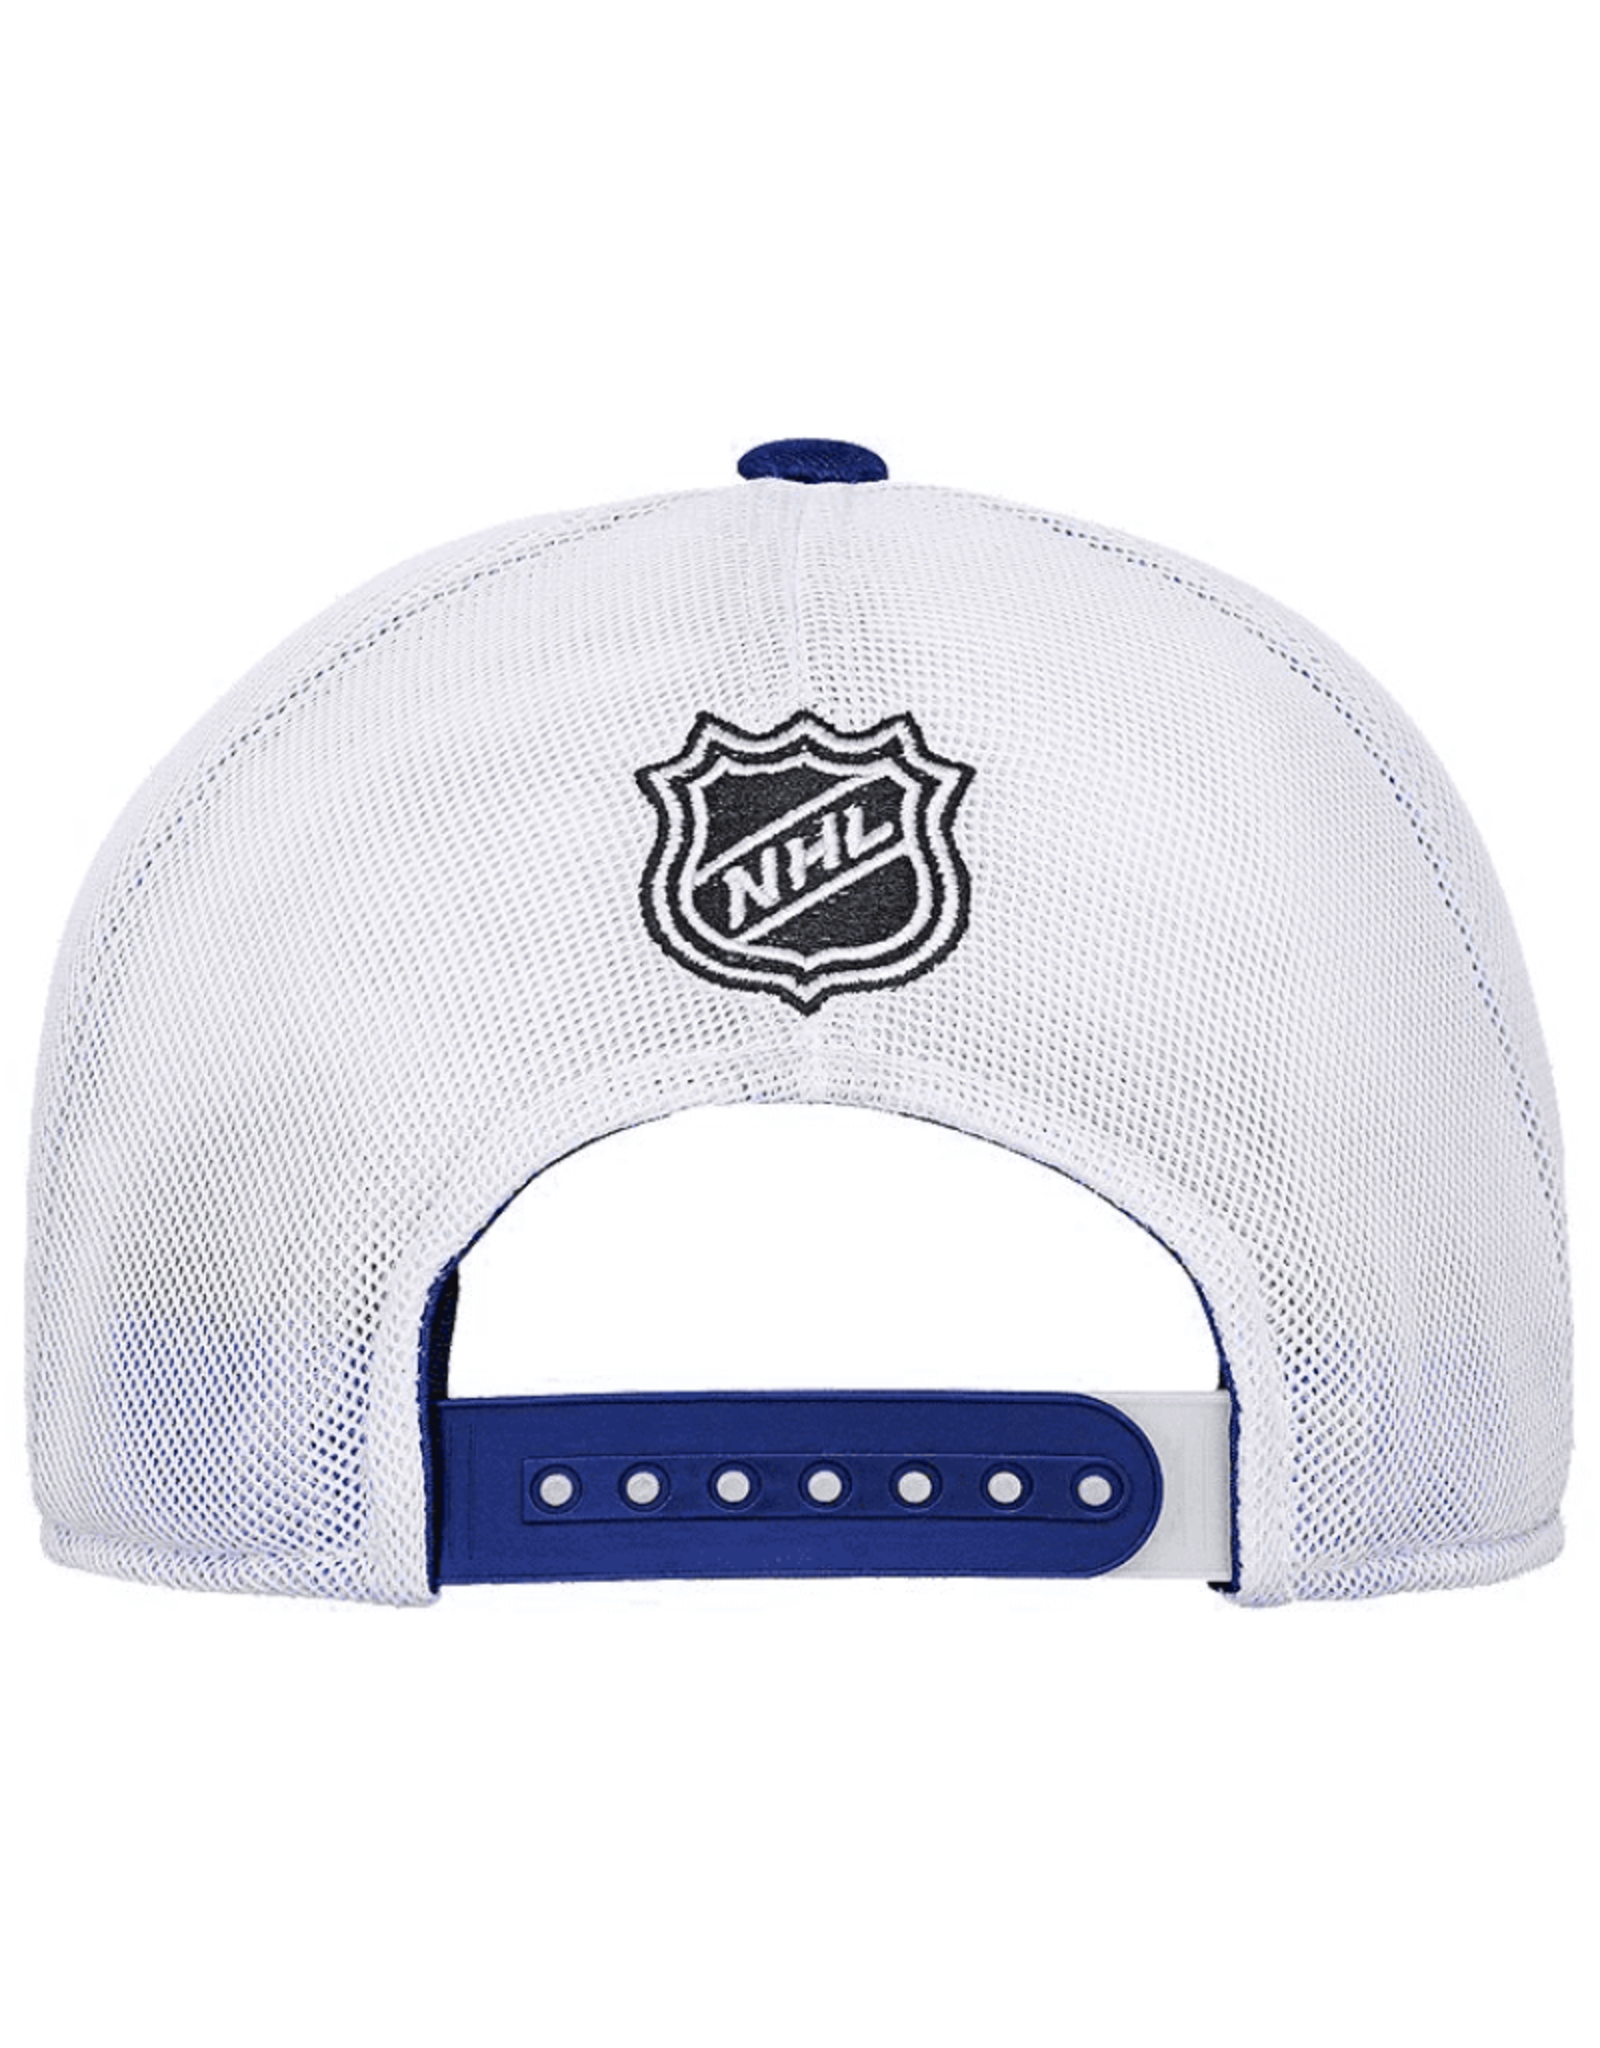 Outerstuff Youth Winger Adjustable Hat Toronto Maple Leafs